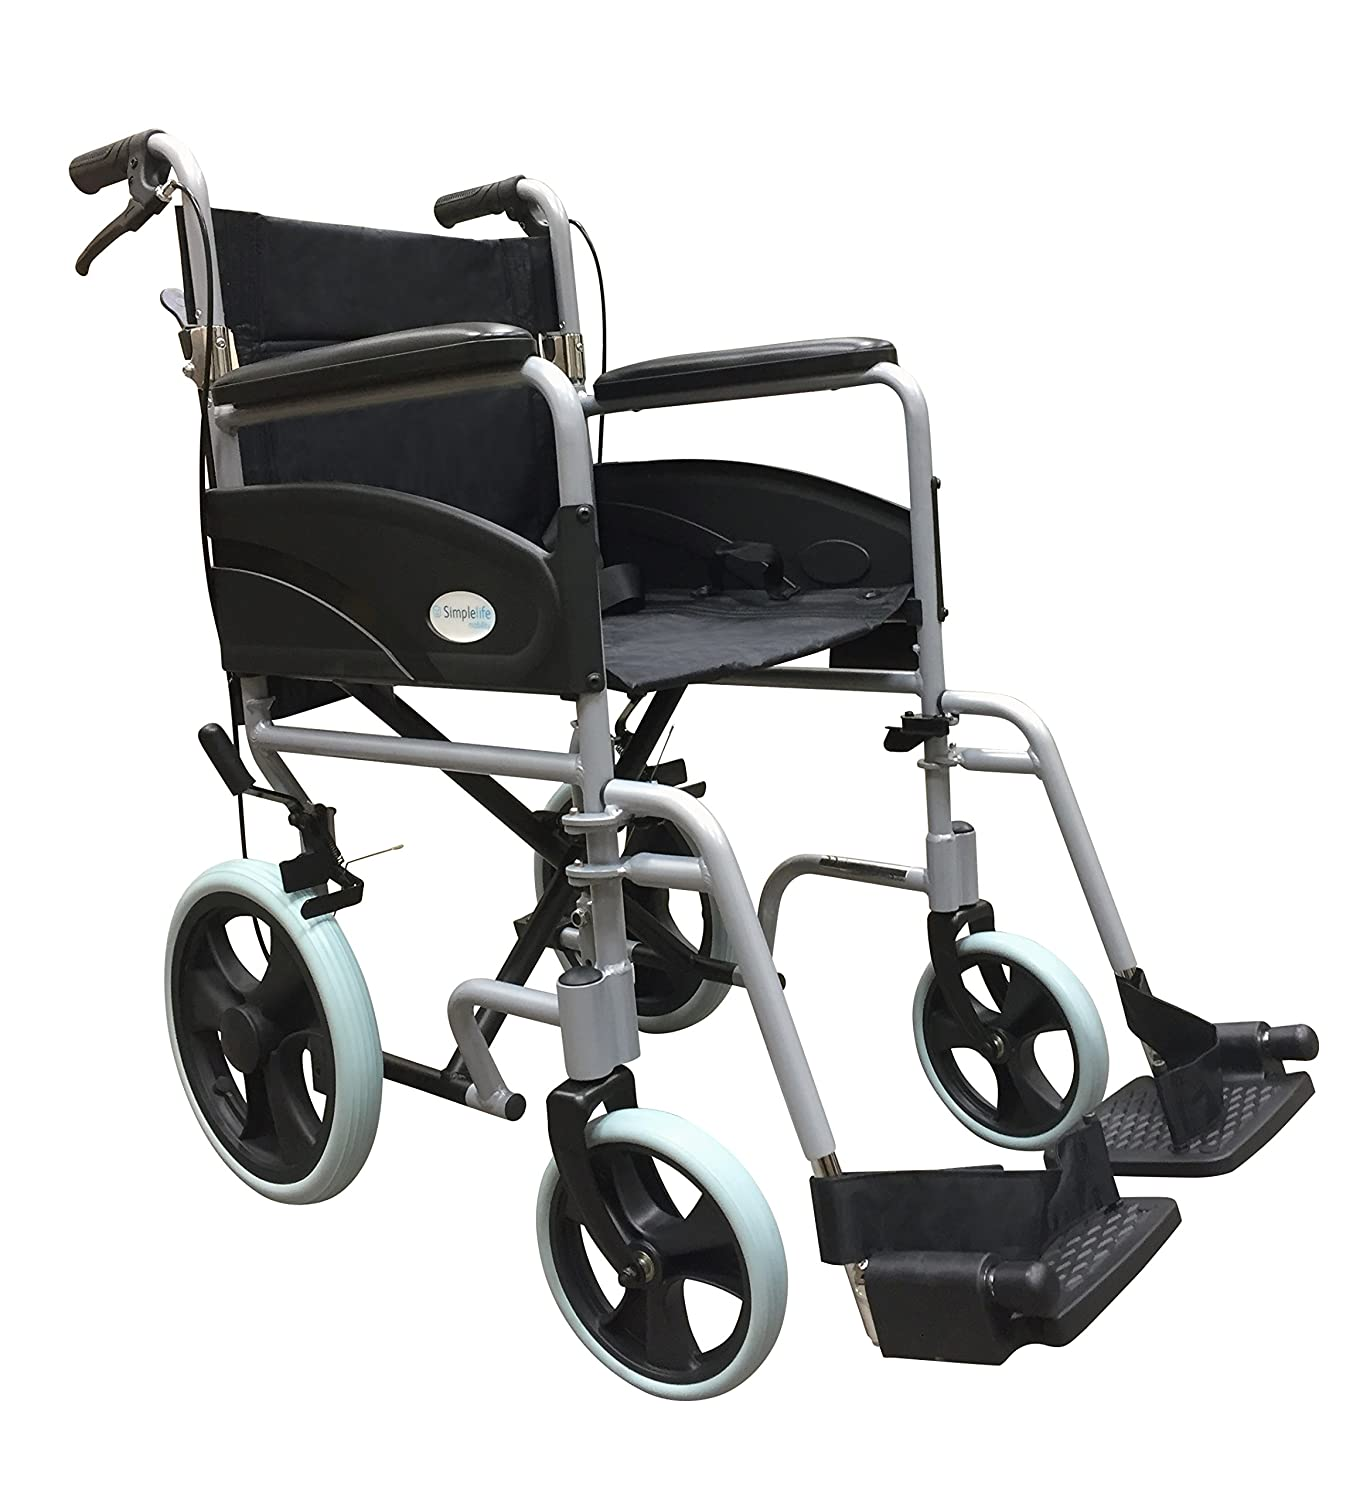 Simplelife Mobility Lightweight Folding Transit Wheelchair